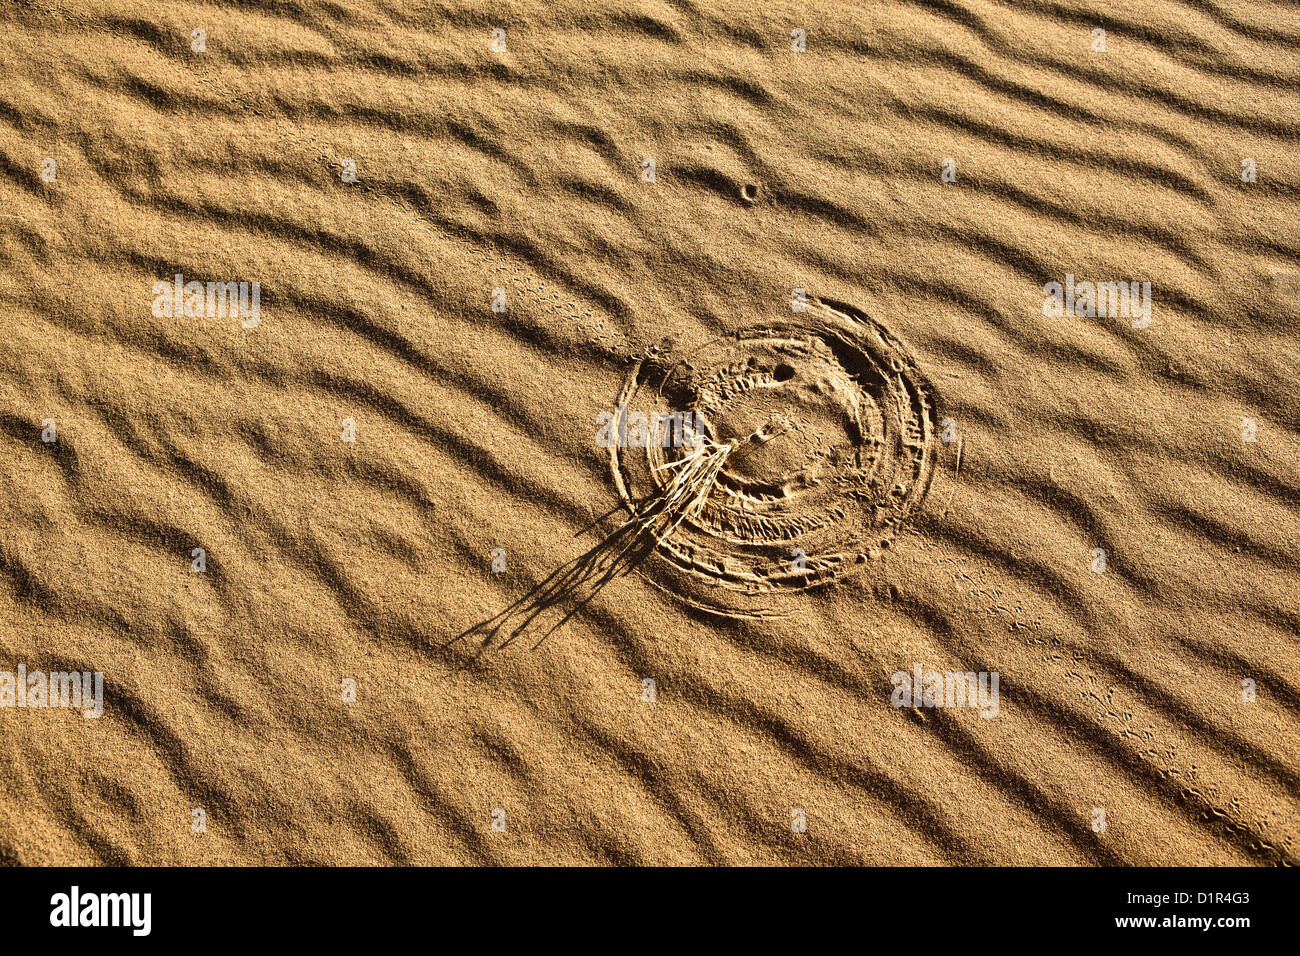 Morocco, M'Hamid, Erg Chigaga sand dunes. Sahara desert. Detail ripple-marks. Little bush making marks in sand - Stock Image